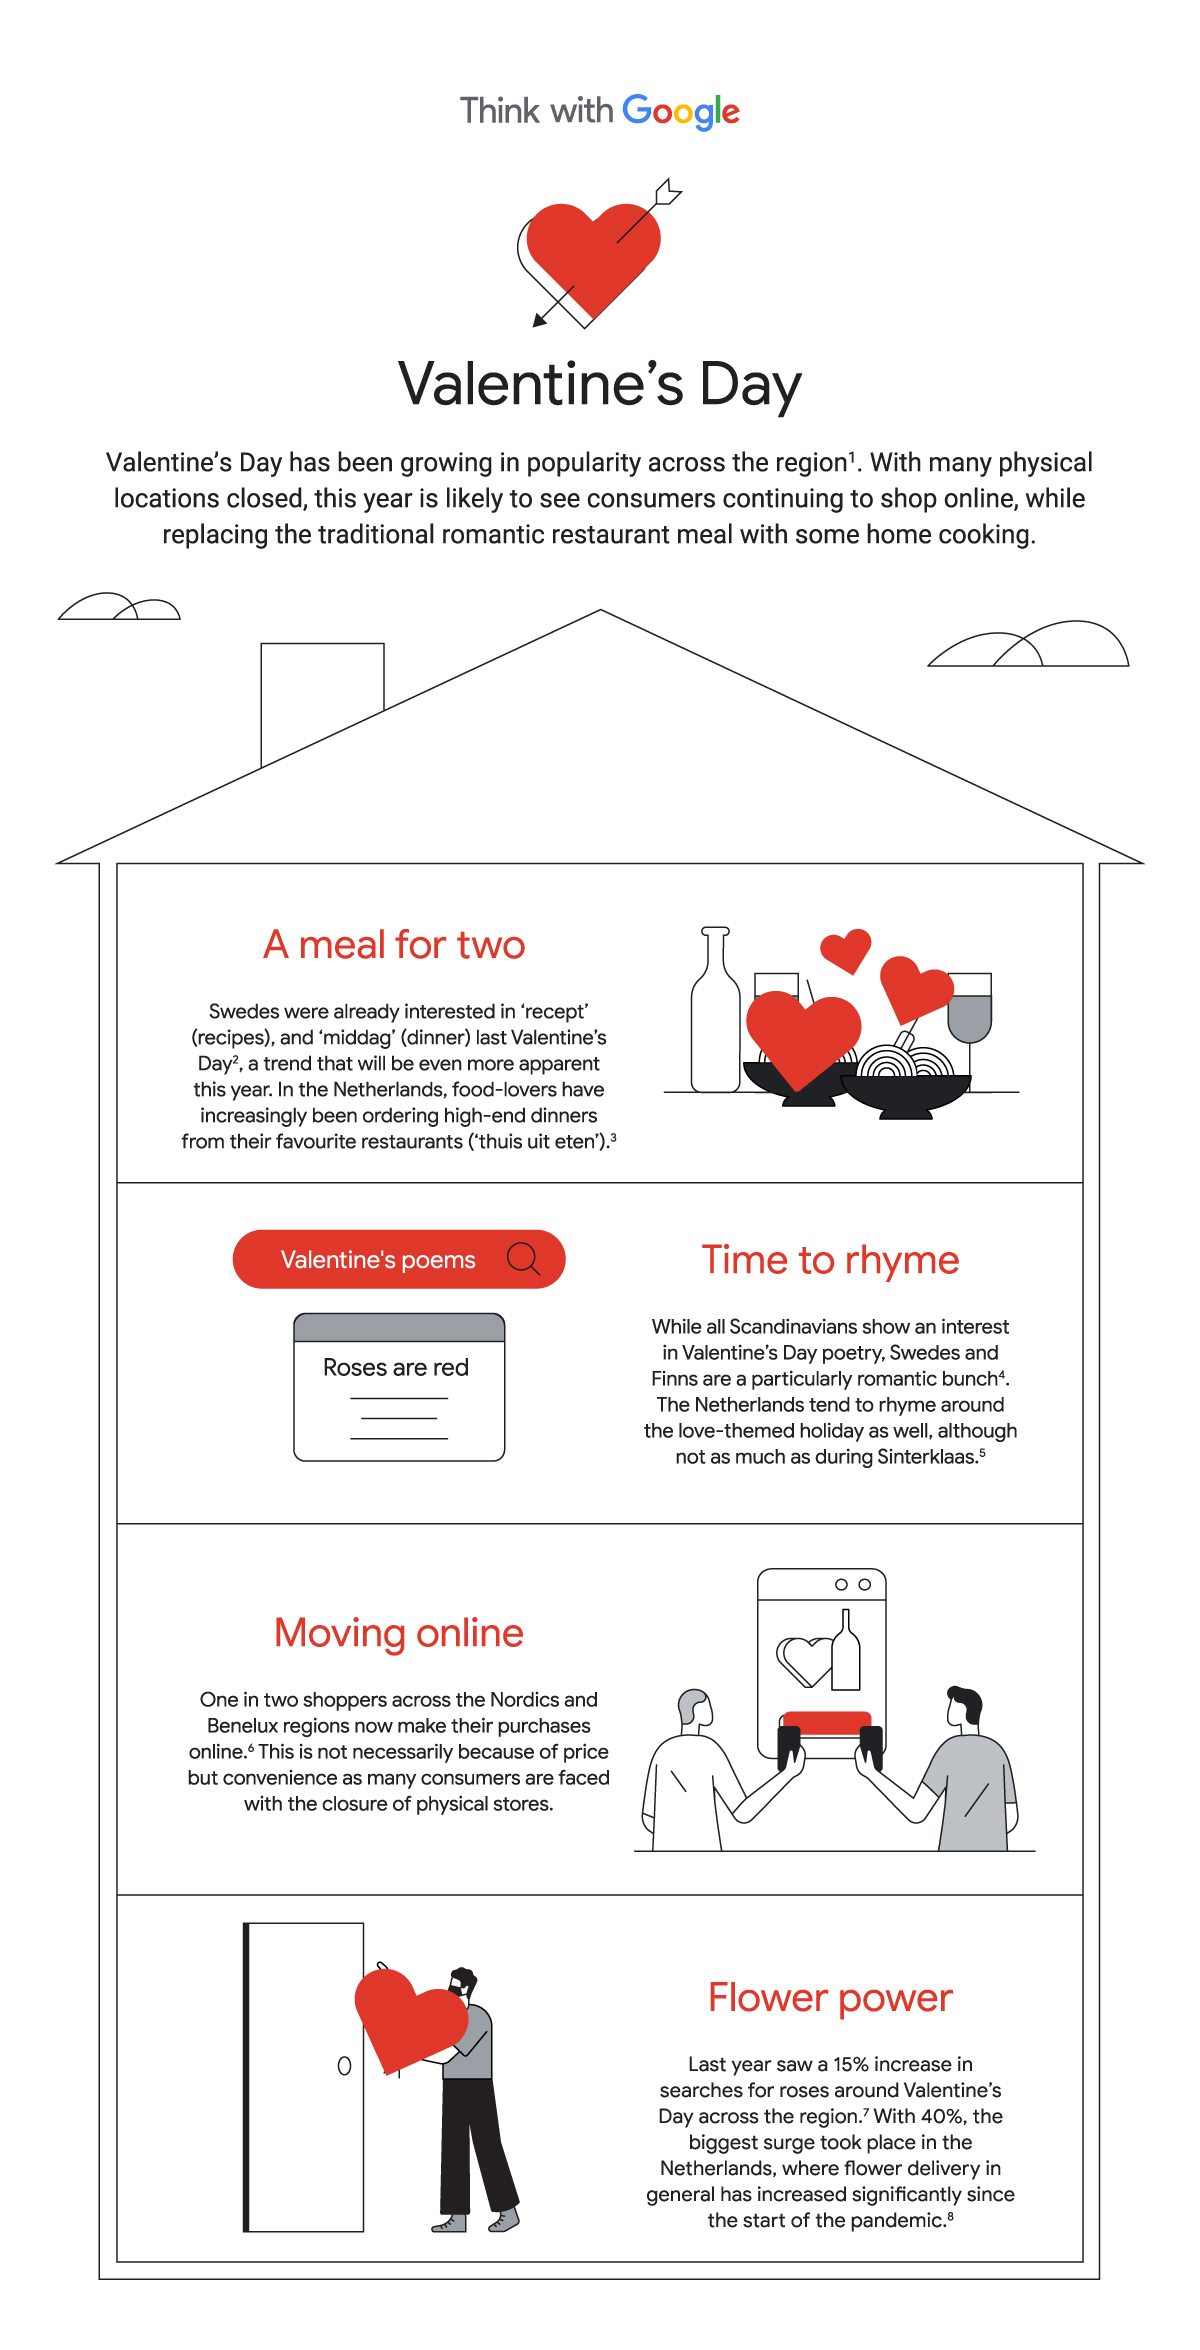 4 last-minute tips to optimise your Easter campaigns-valentines-v3